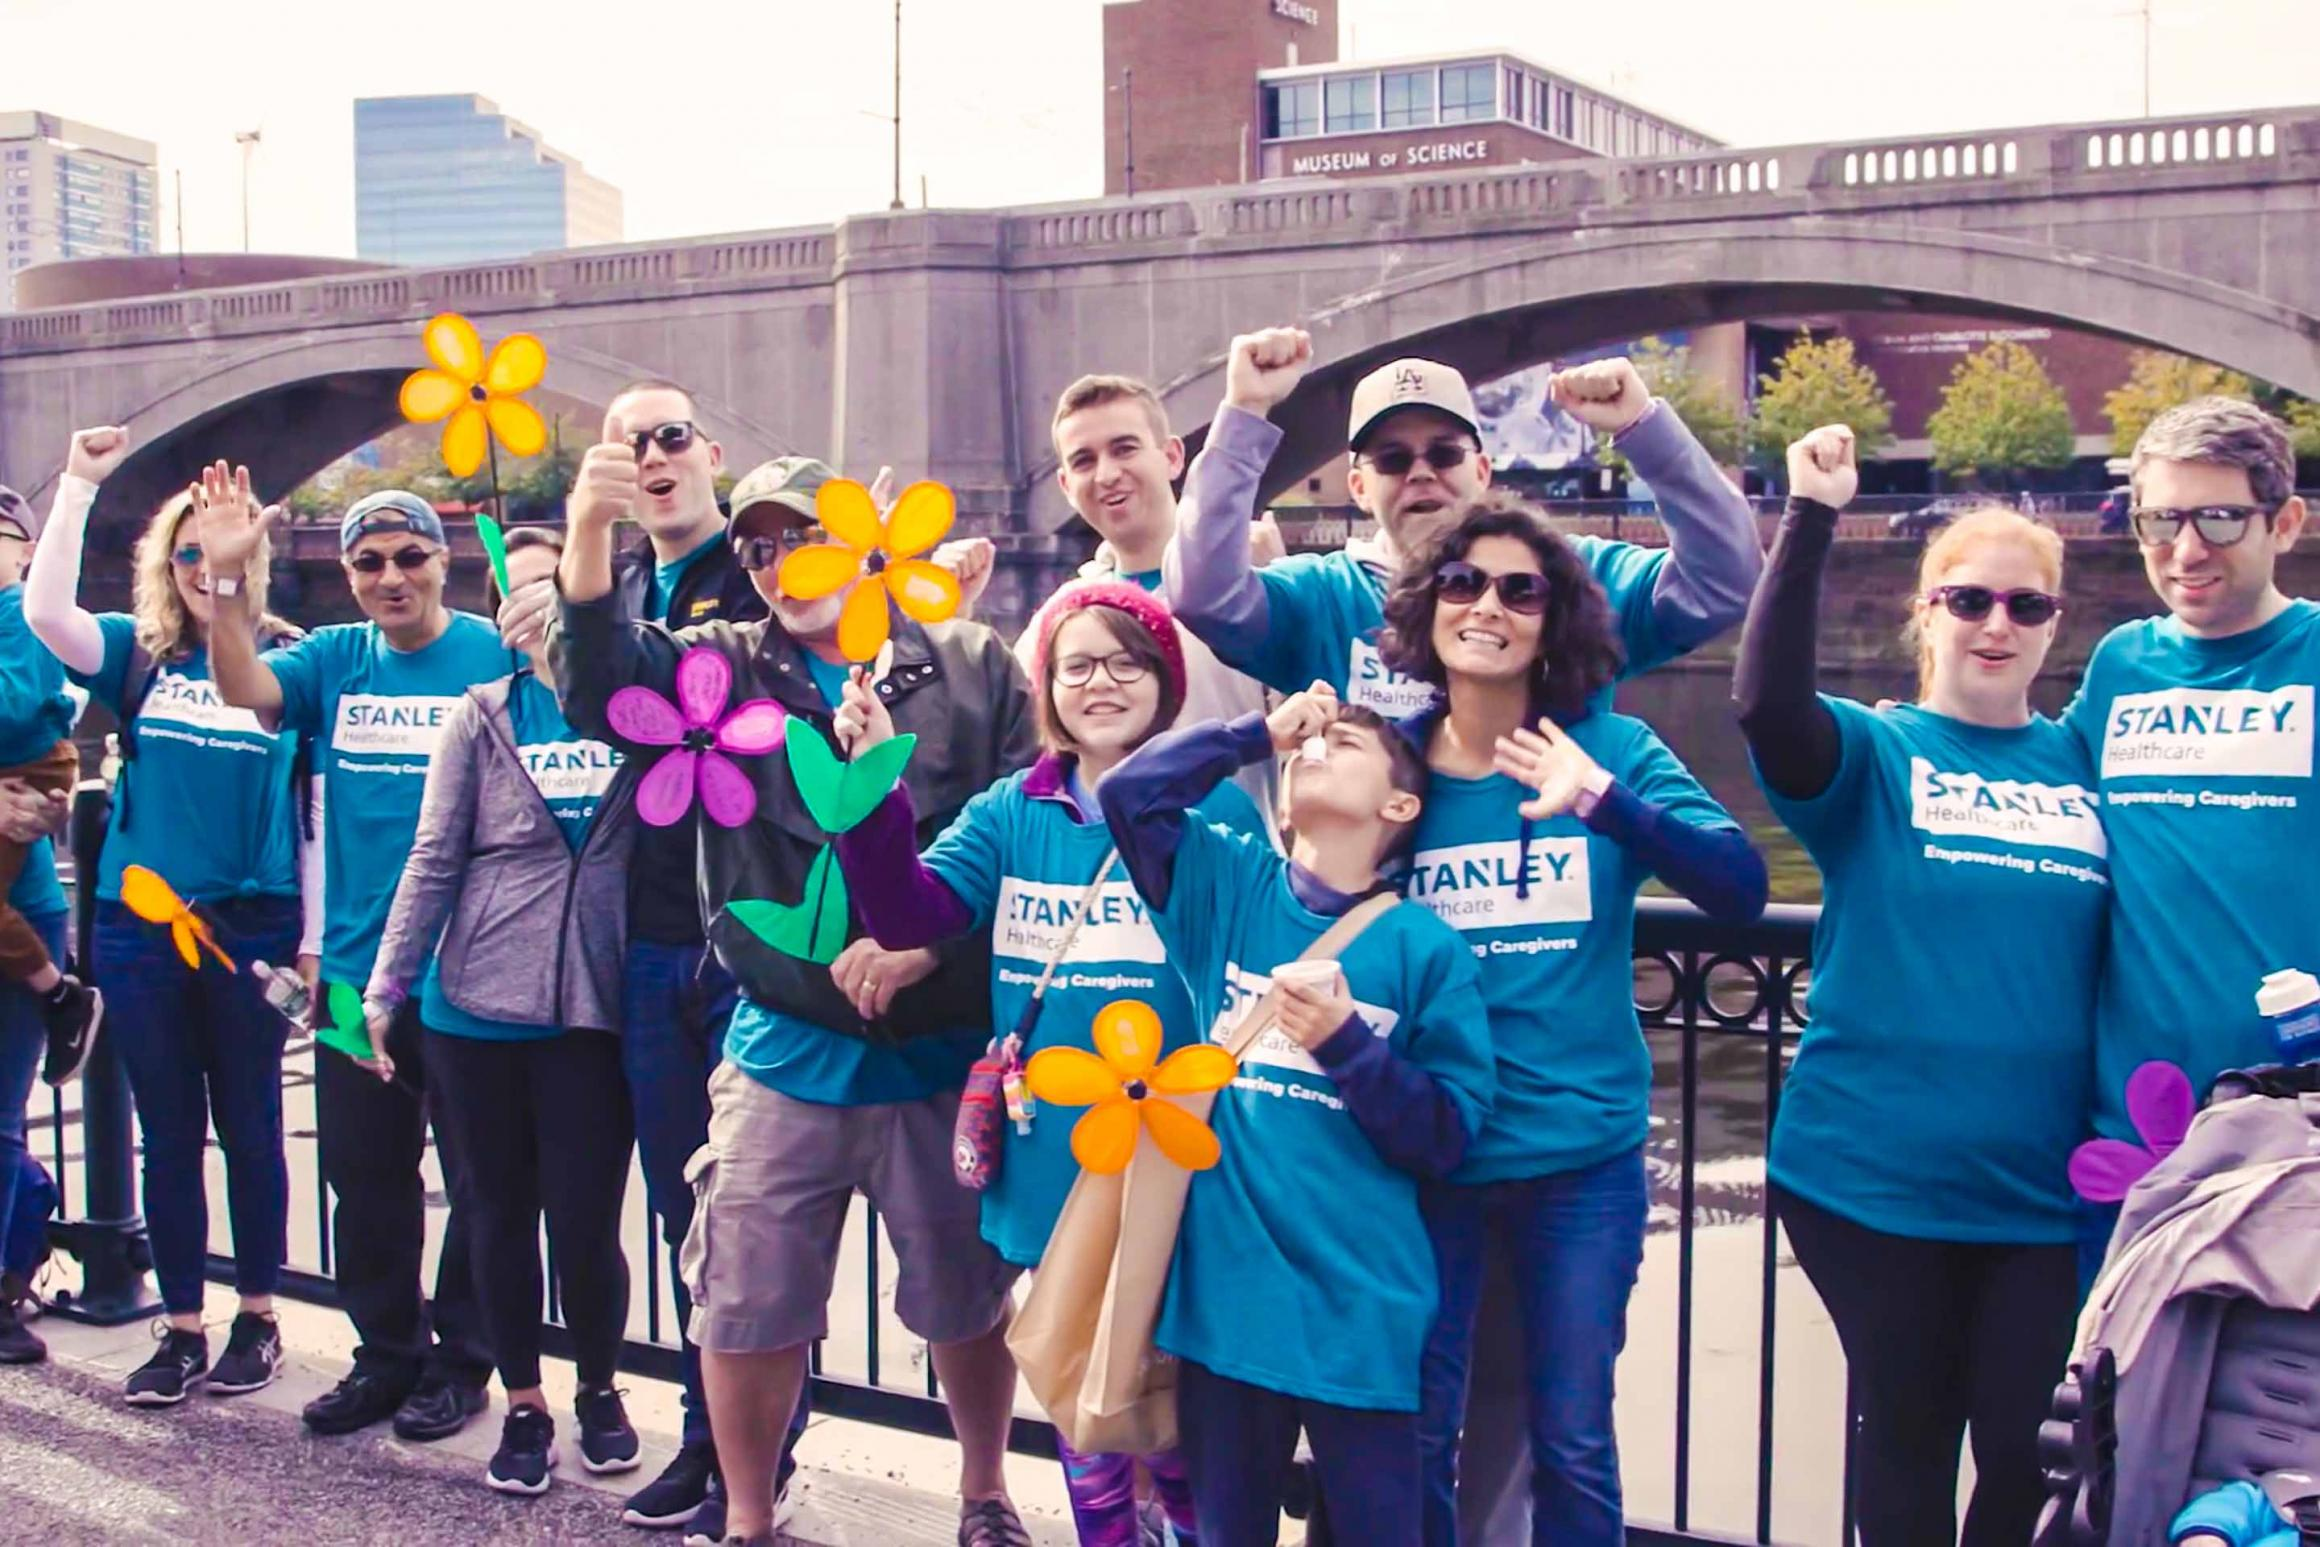 STANLEY Healthcare team at Walk to End Alzheimer's